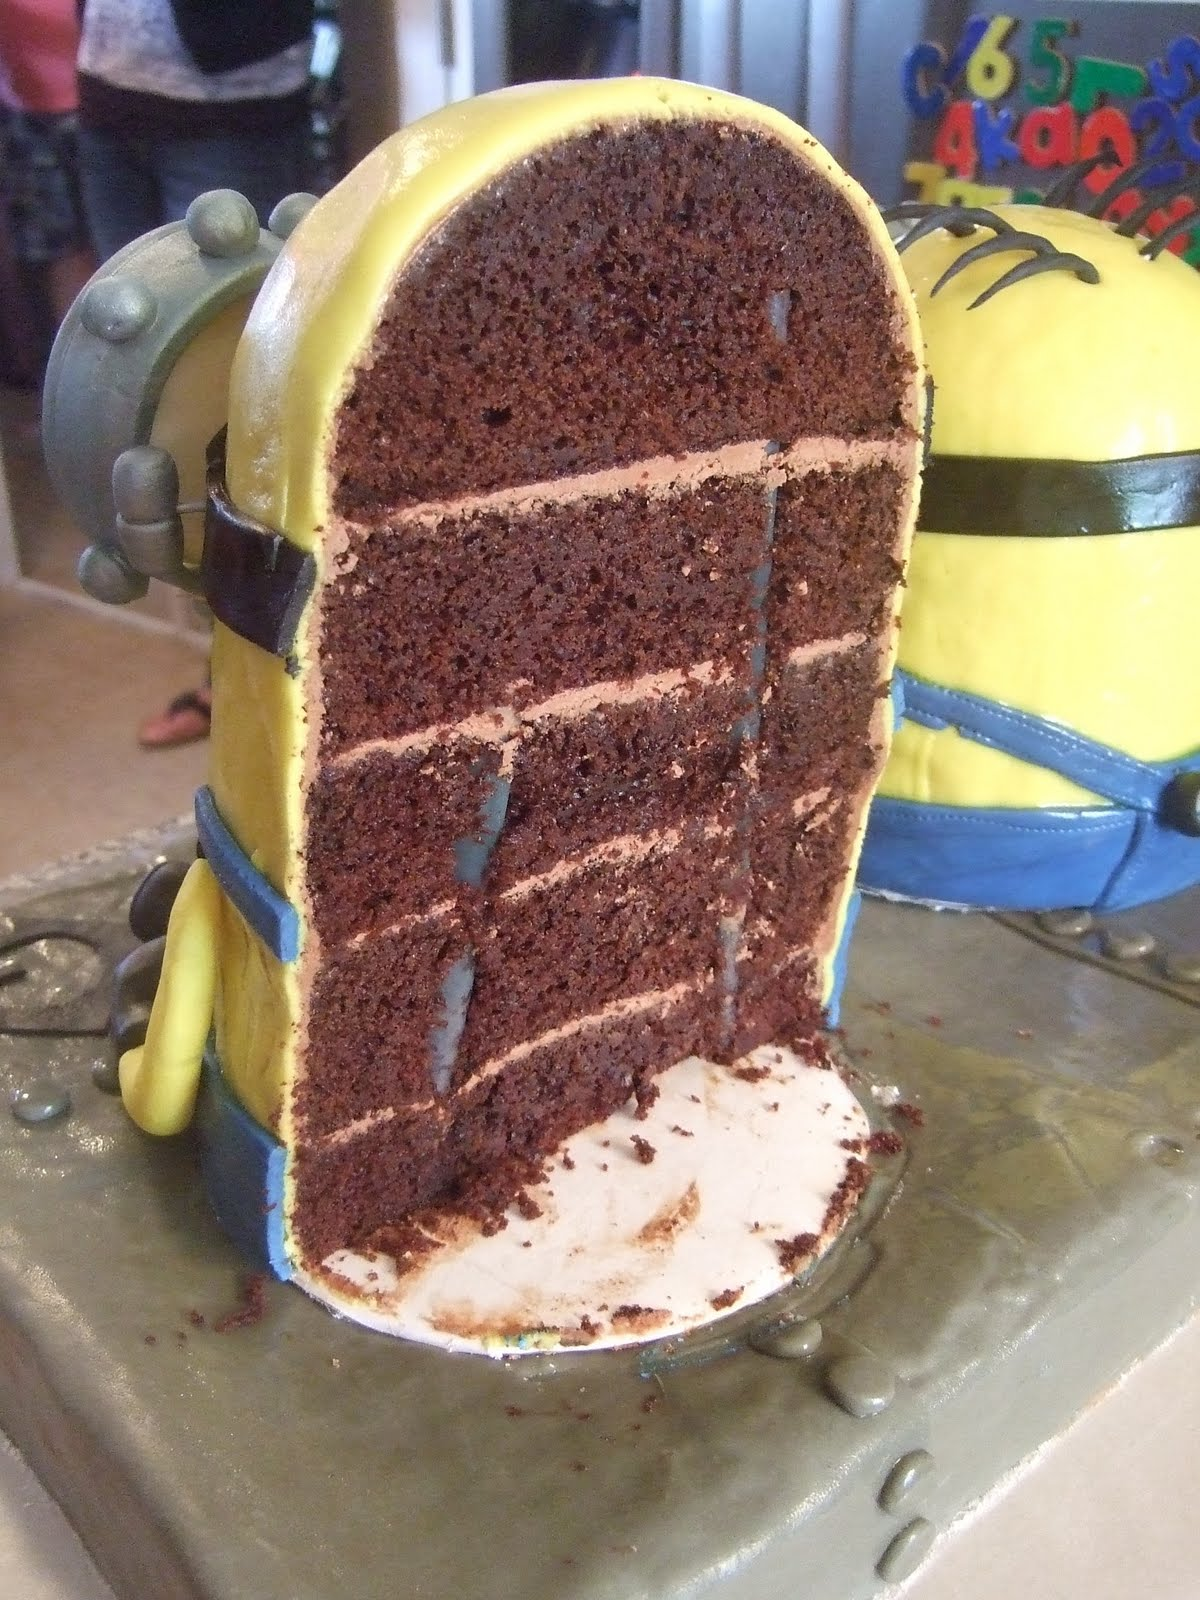 Minions Cake http://throughfuchsiacoloredglasses.blogspot.com/2011/08/making-of-minion-cake.html